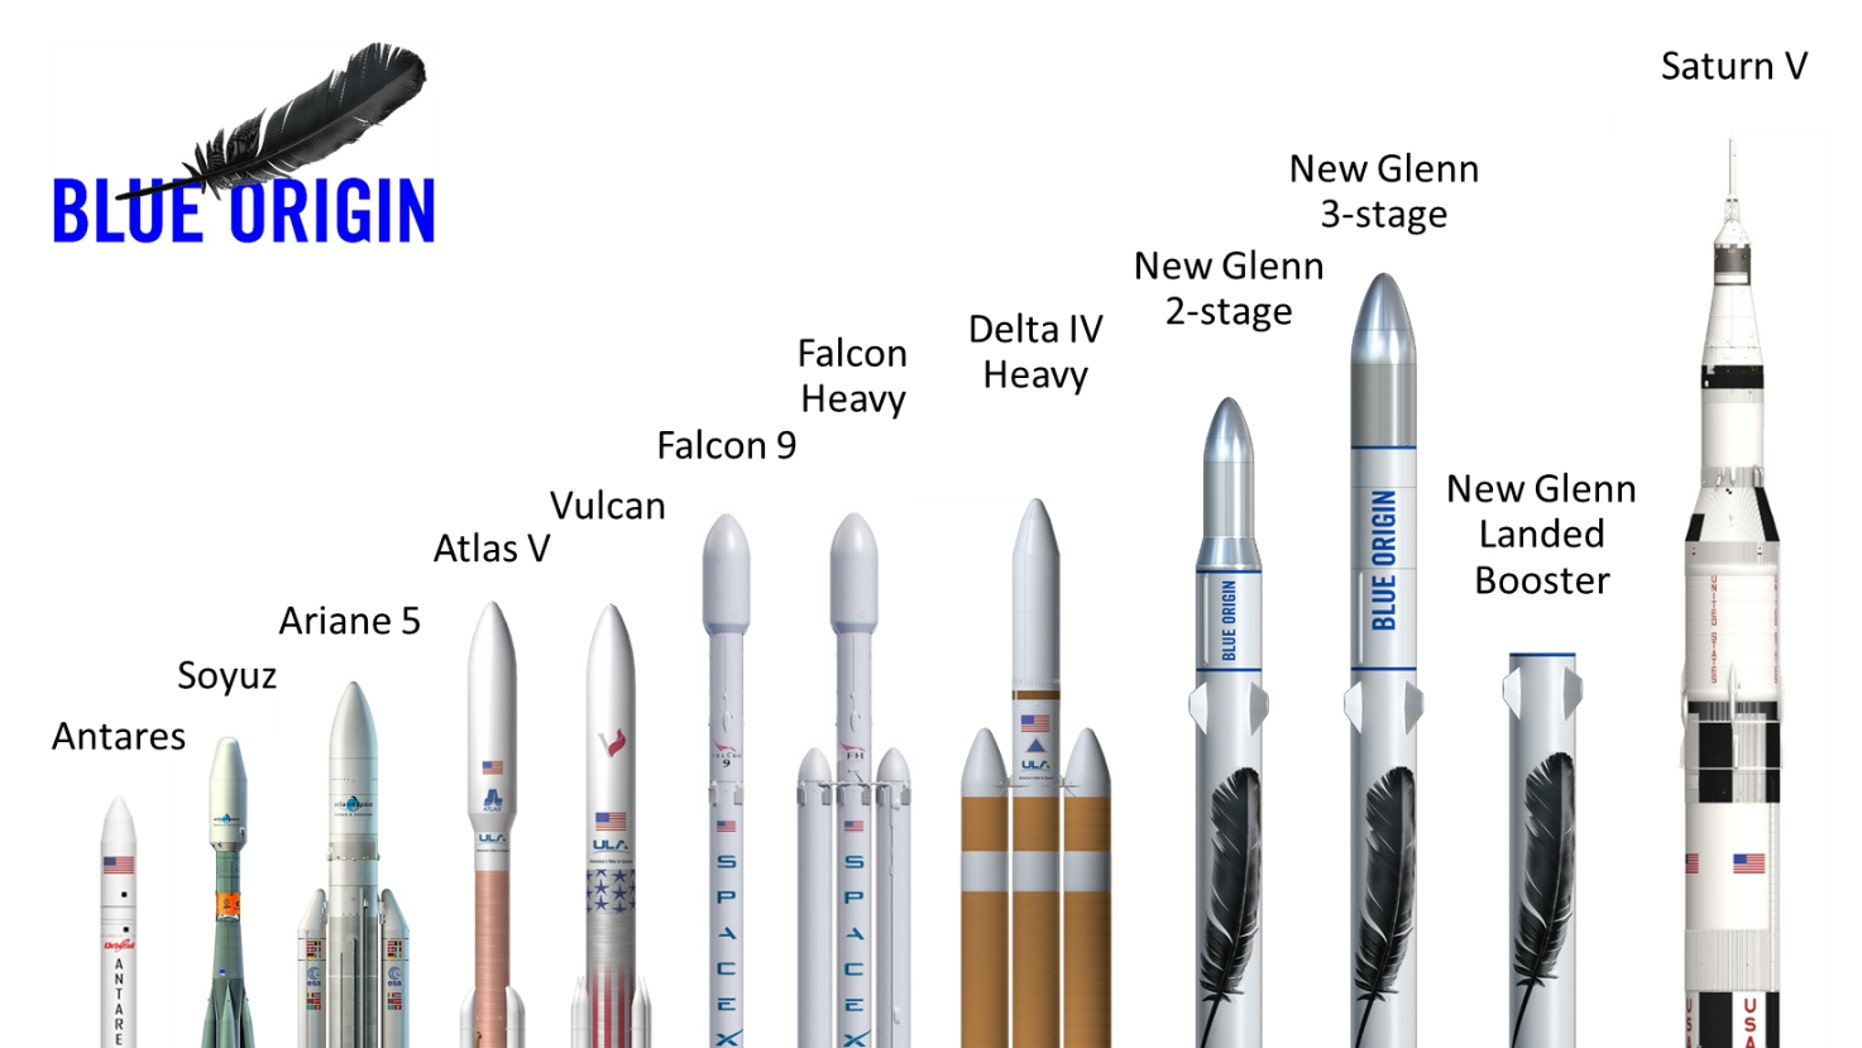 Blue Origin's newly announced New Glenn rockets will feature reusable first stages, and the two-stage and three-stage versions will be 270 feet (82 meters) and 313 feet (95 m) tall, respectively.